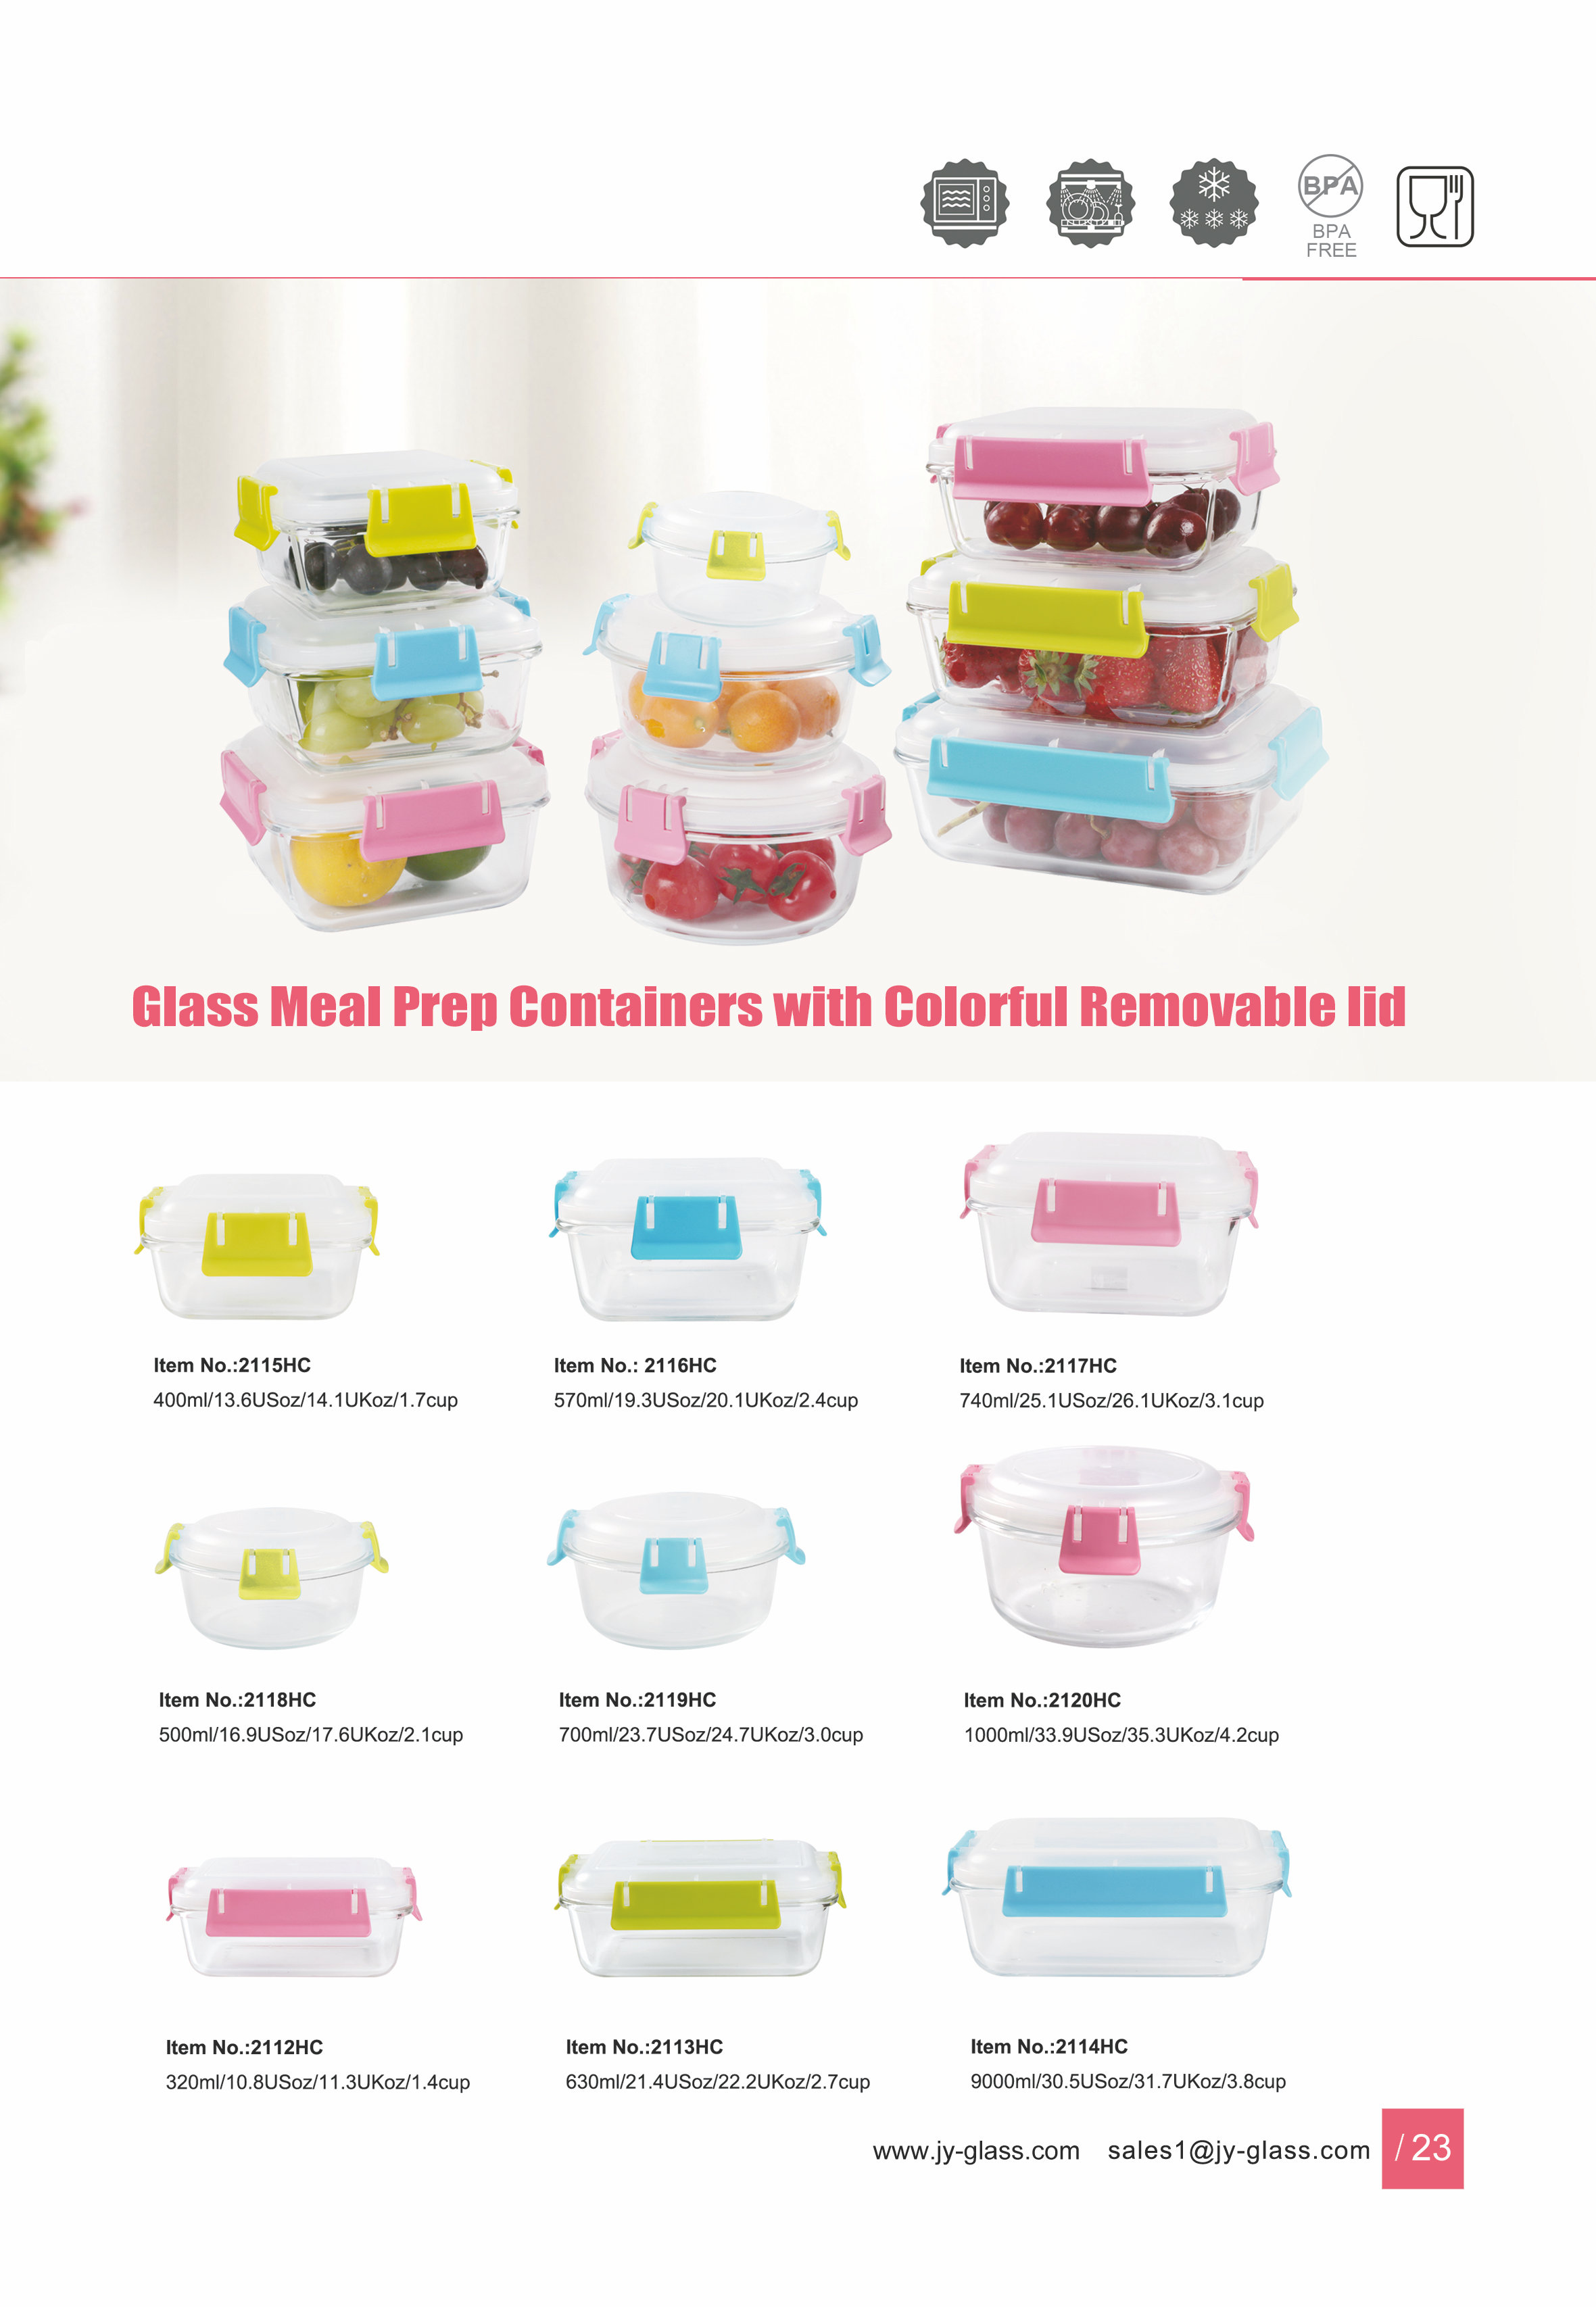 Jasper Glass Meal Prep Food Storage Container with Coloful Romovable Lid Featured Image